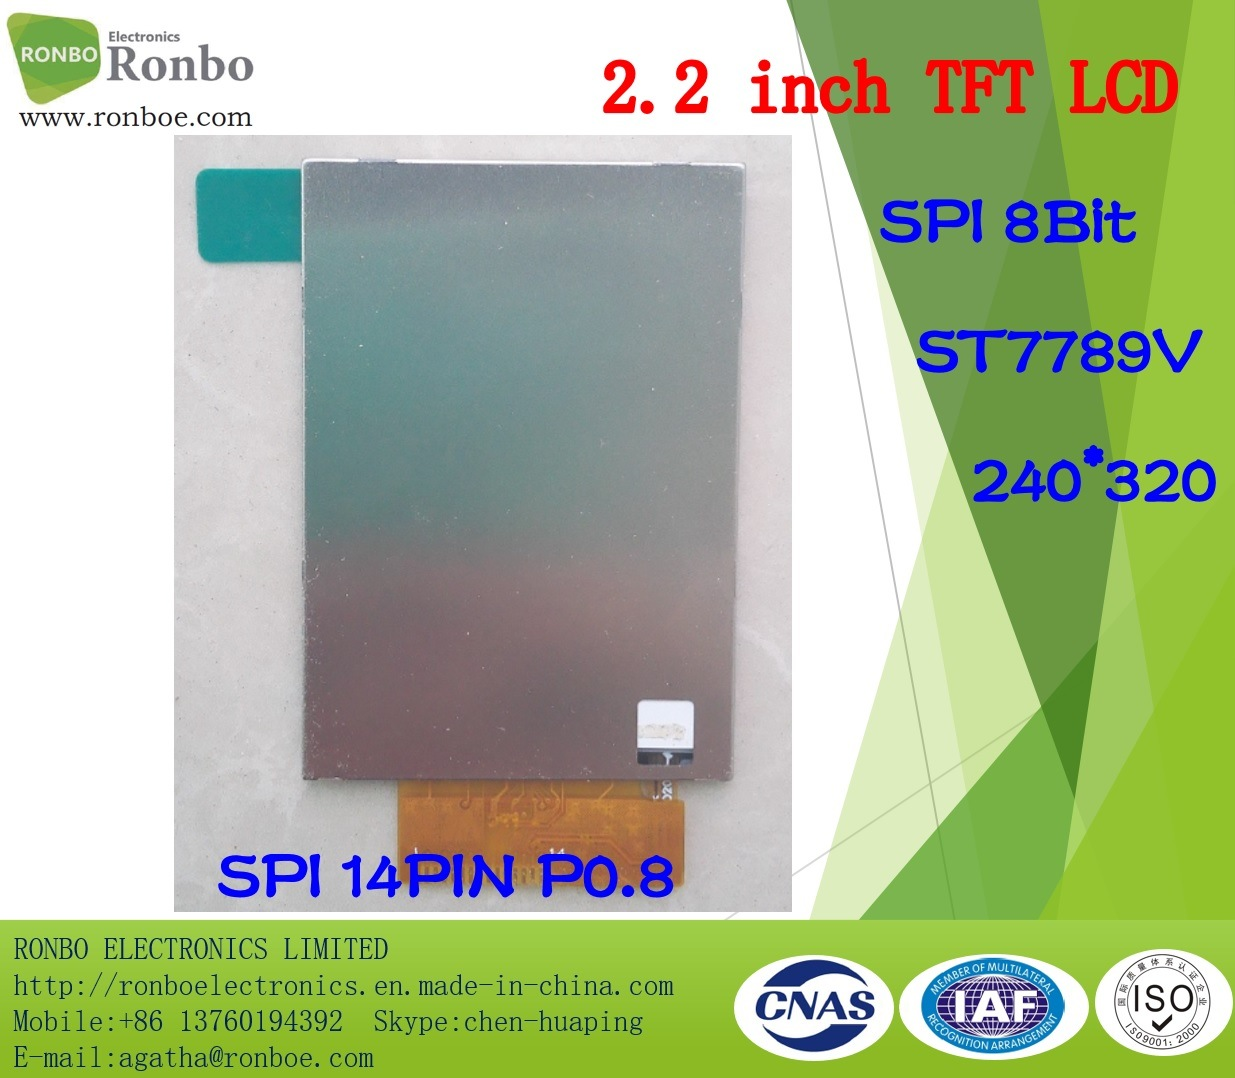 2.2 Inch 240*320 Spi 14pin TFT LCD Panel, St7789V with Option Touch Screen pictures & photos